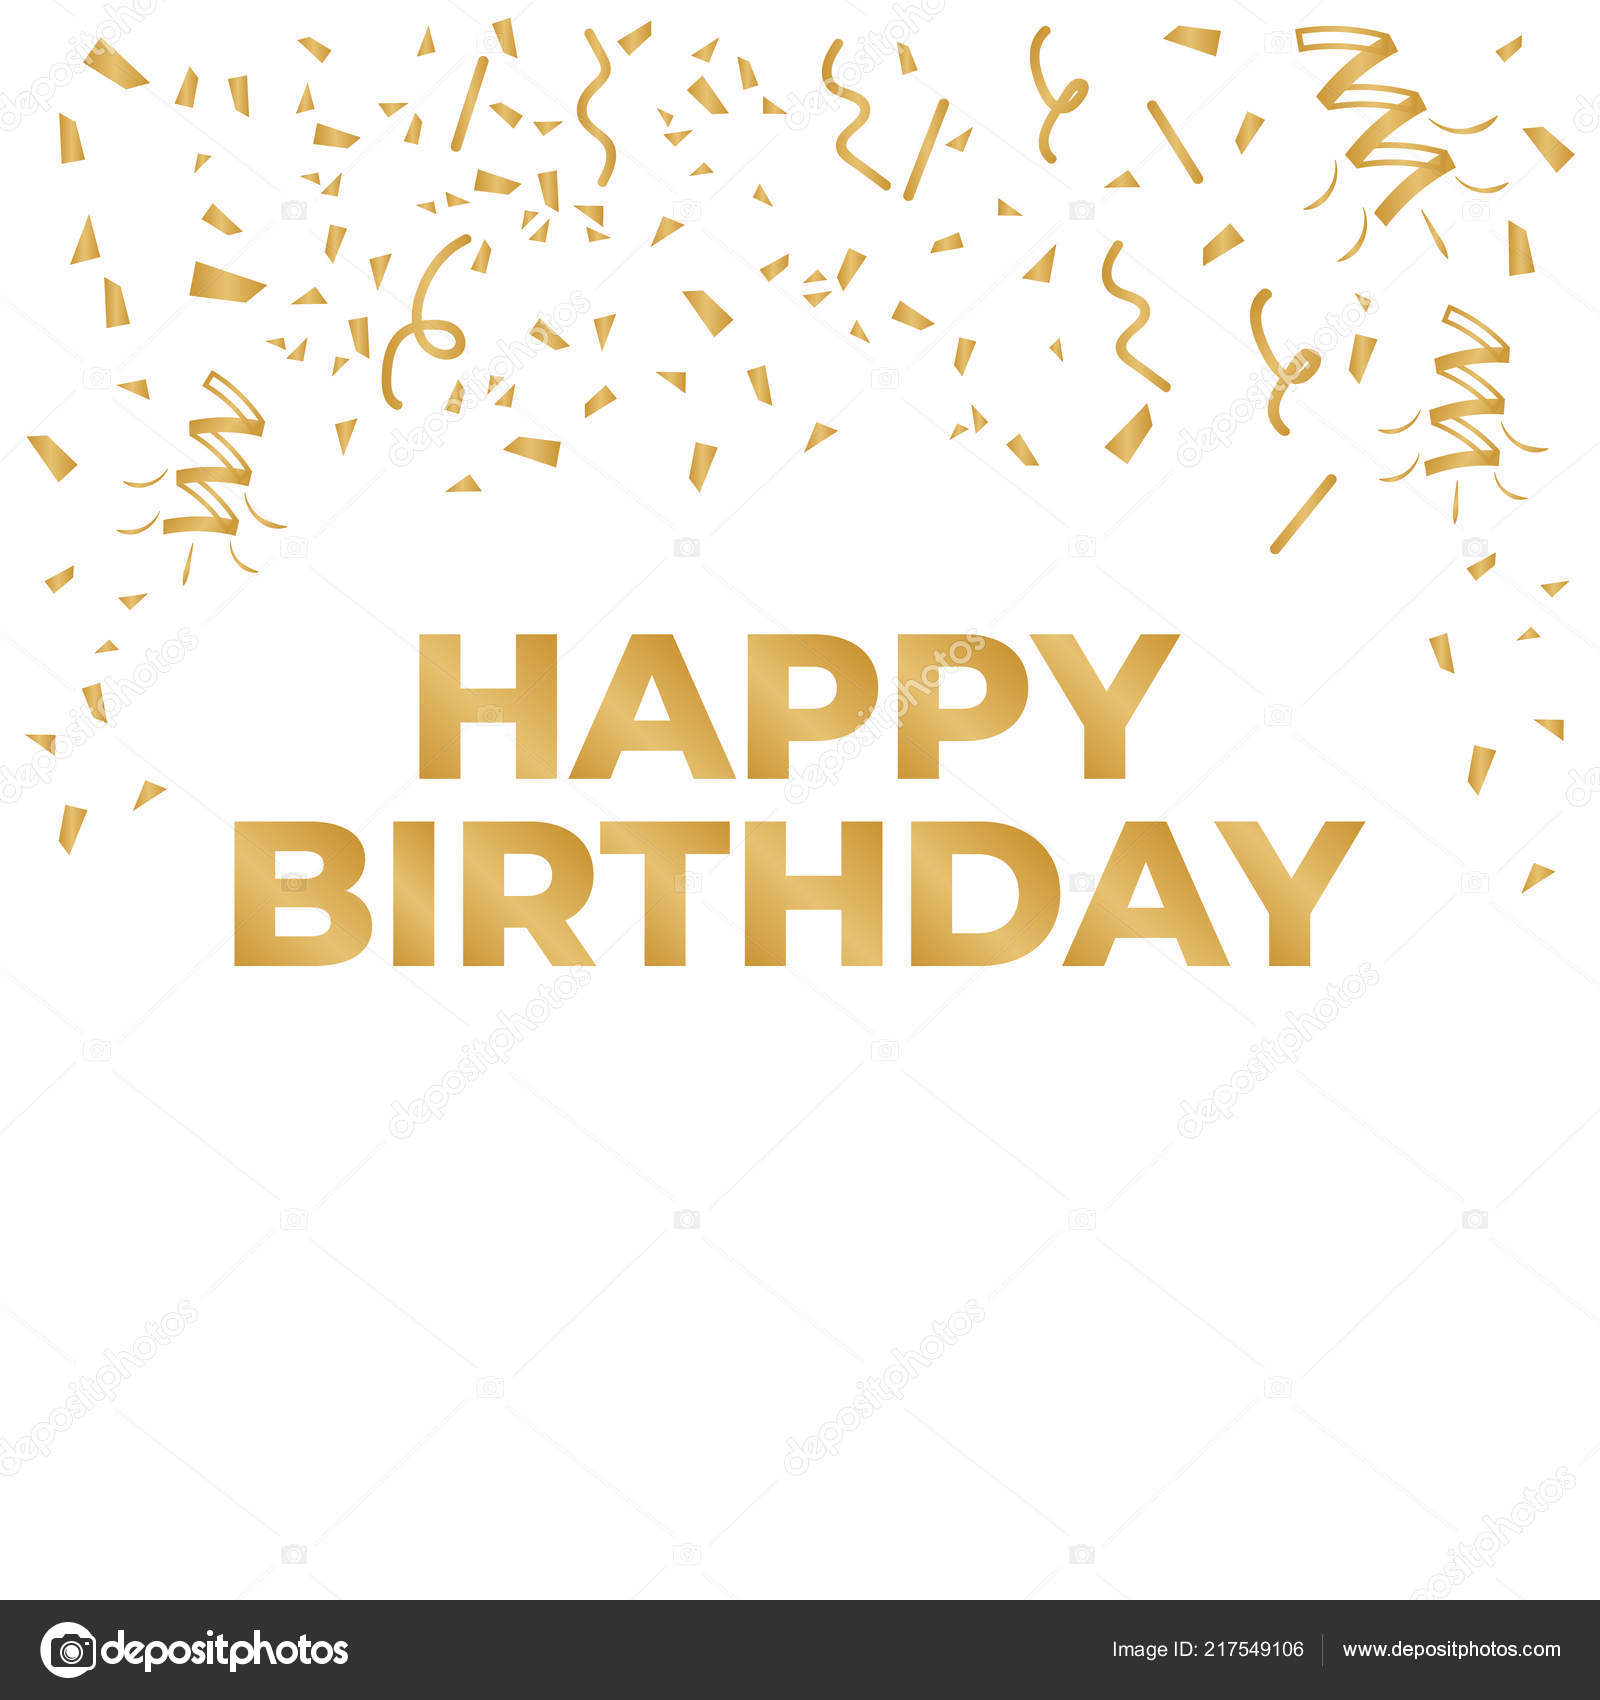 Birthday Poster Template from st4.depositphotos.com